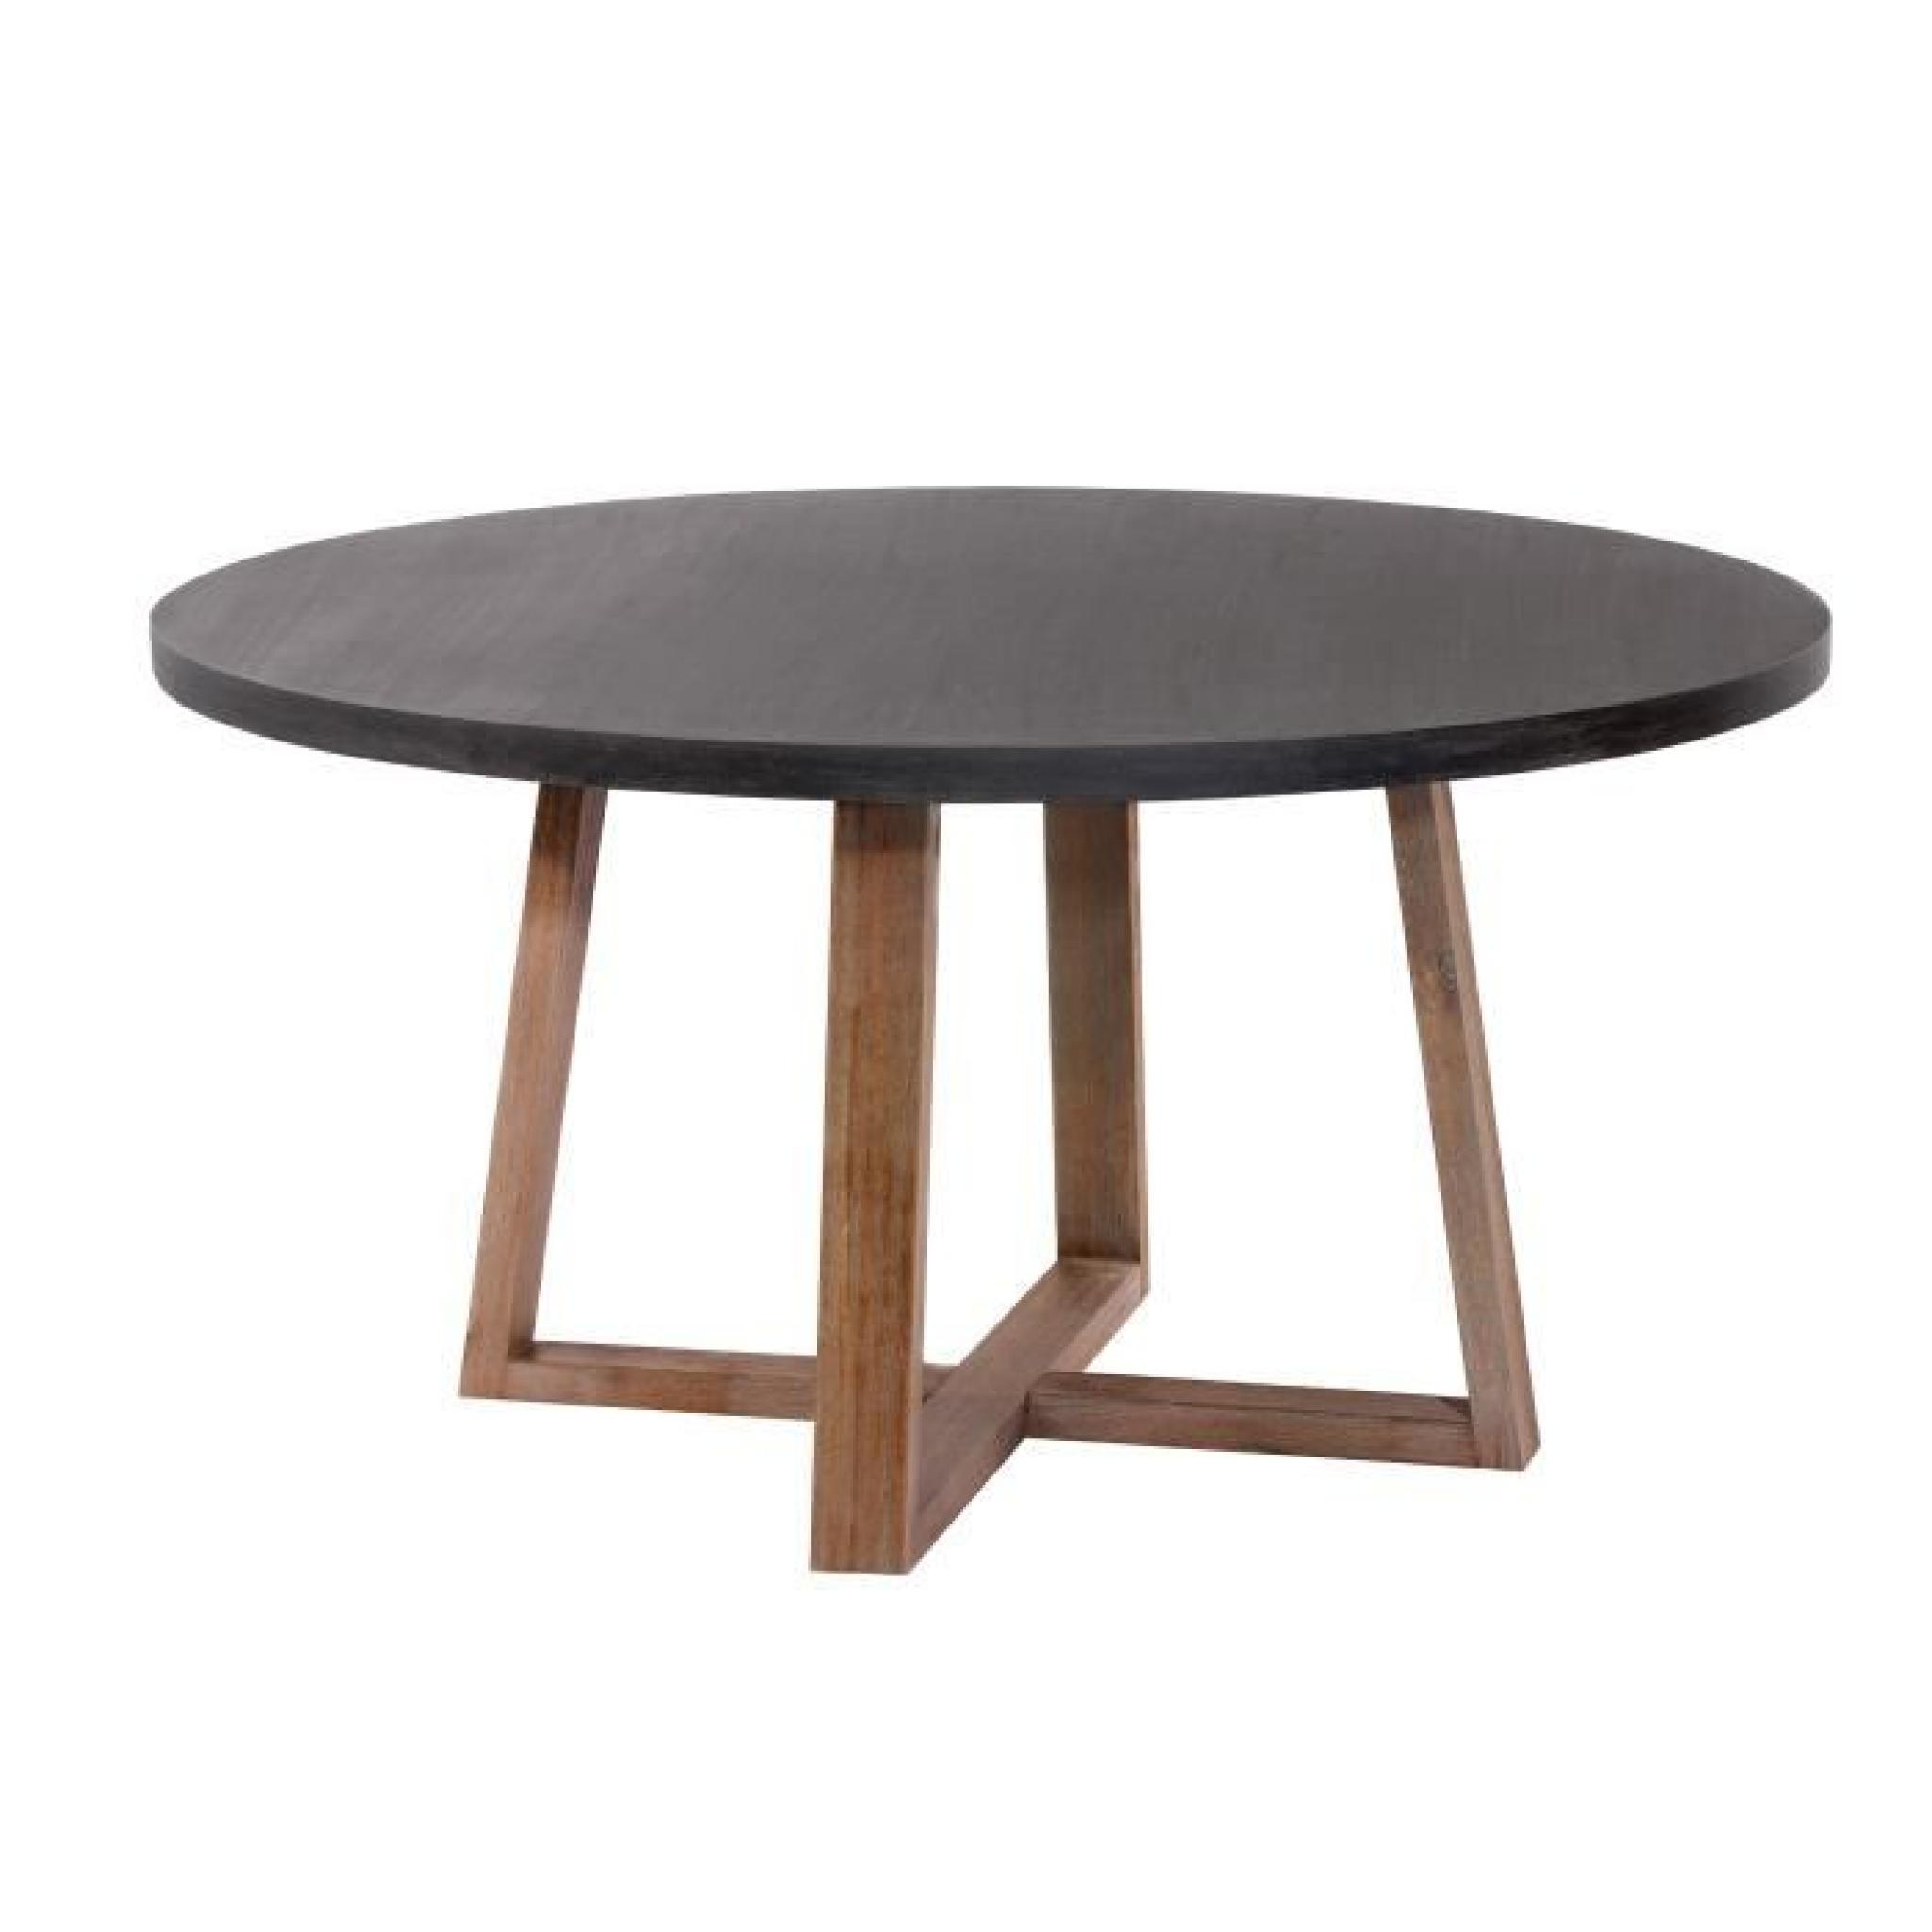 Table ronde tambora 140 cm achat vente table salle a for Table a manger ronde pas cher